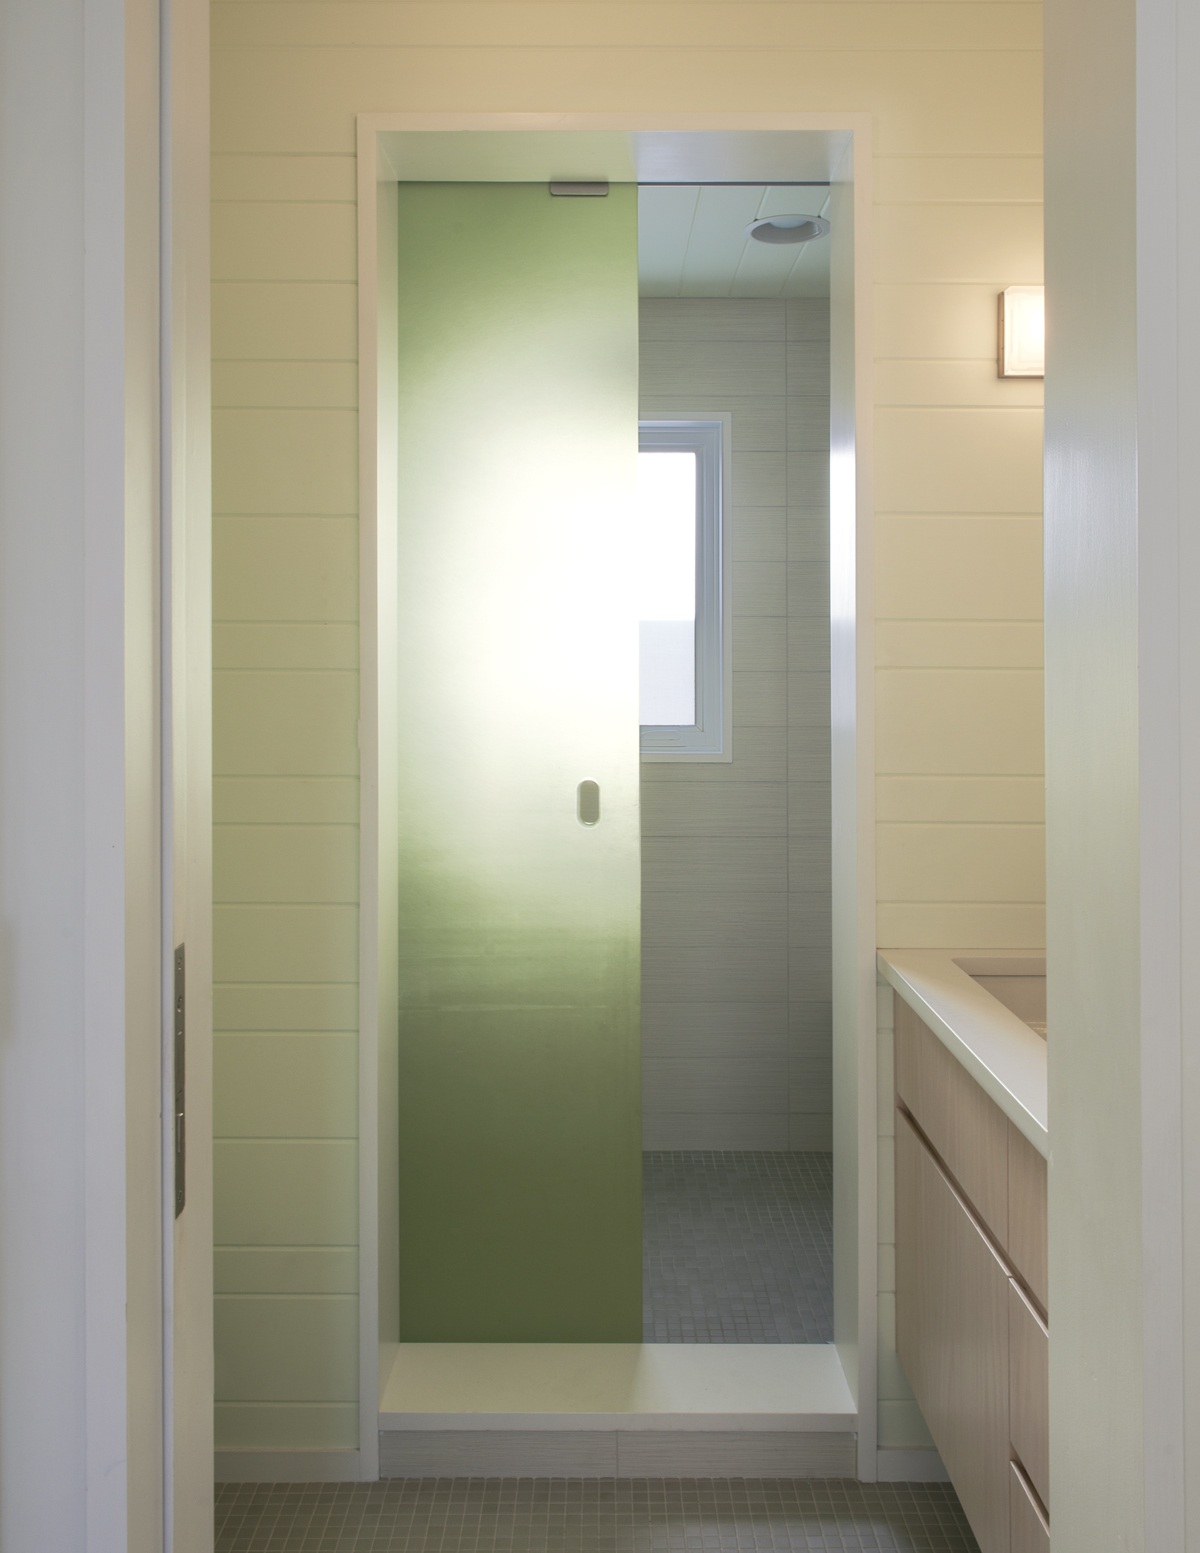 Fire Island beach house translucent sliding shower door